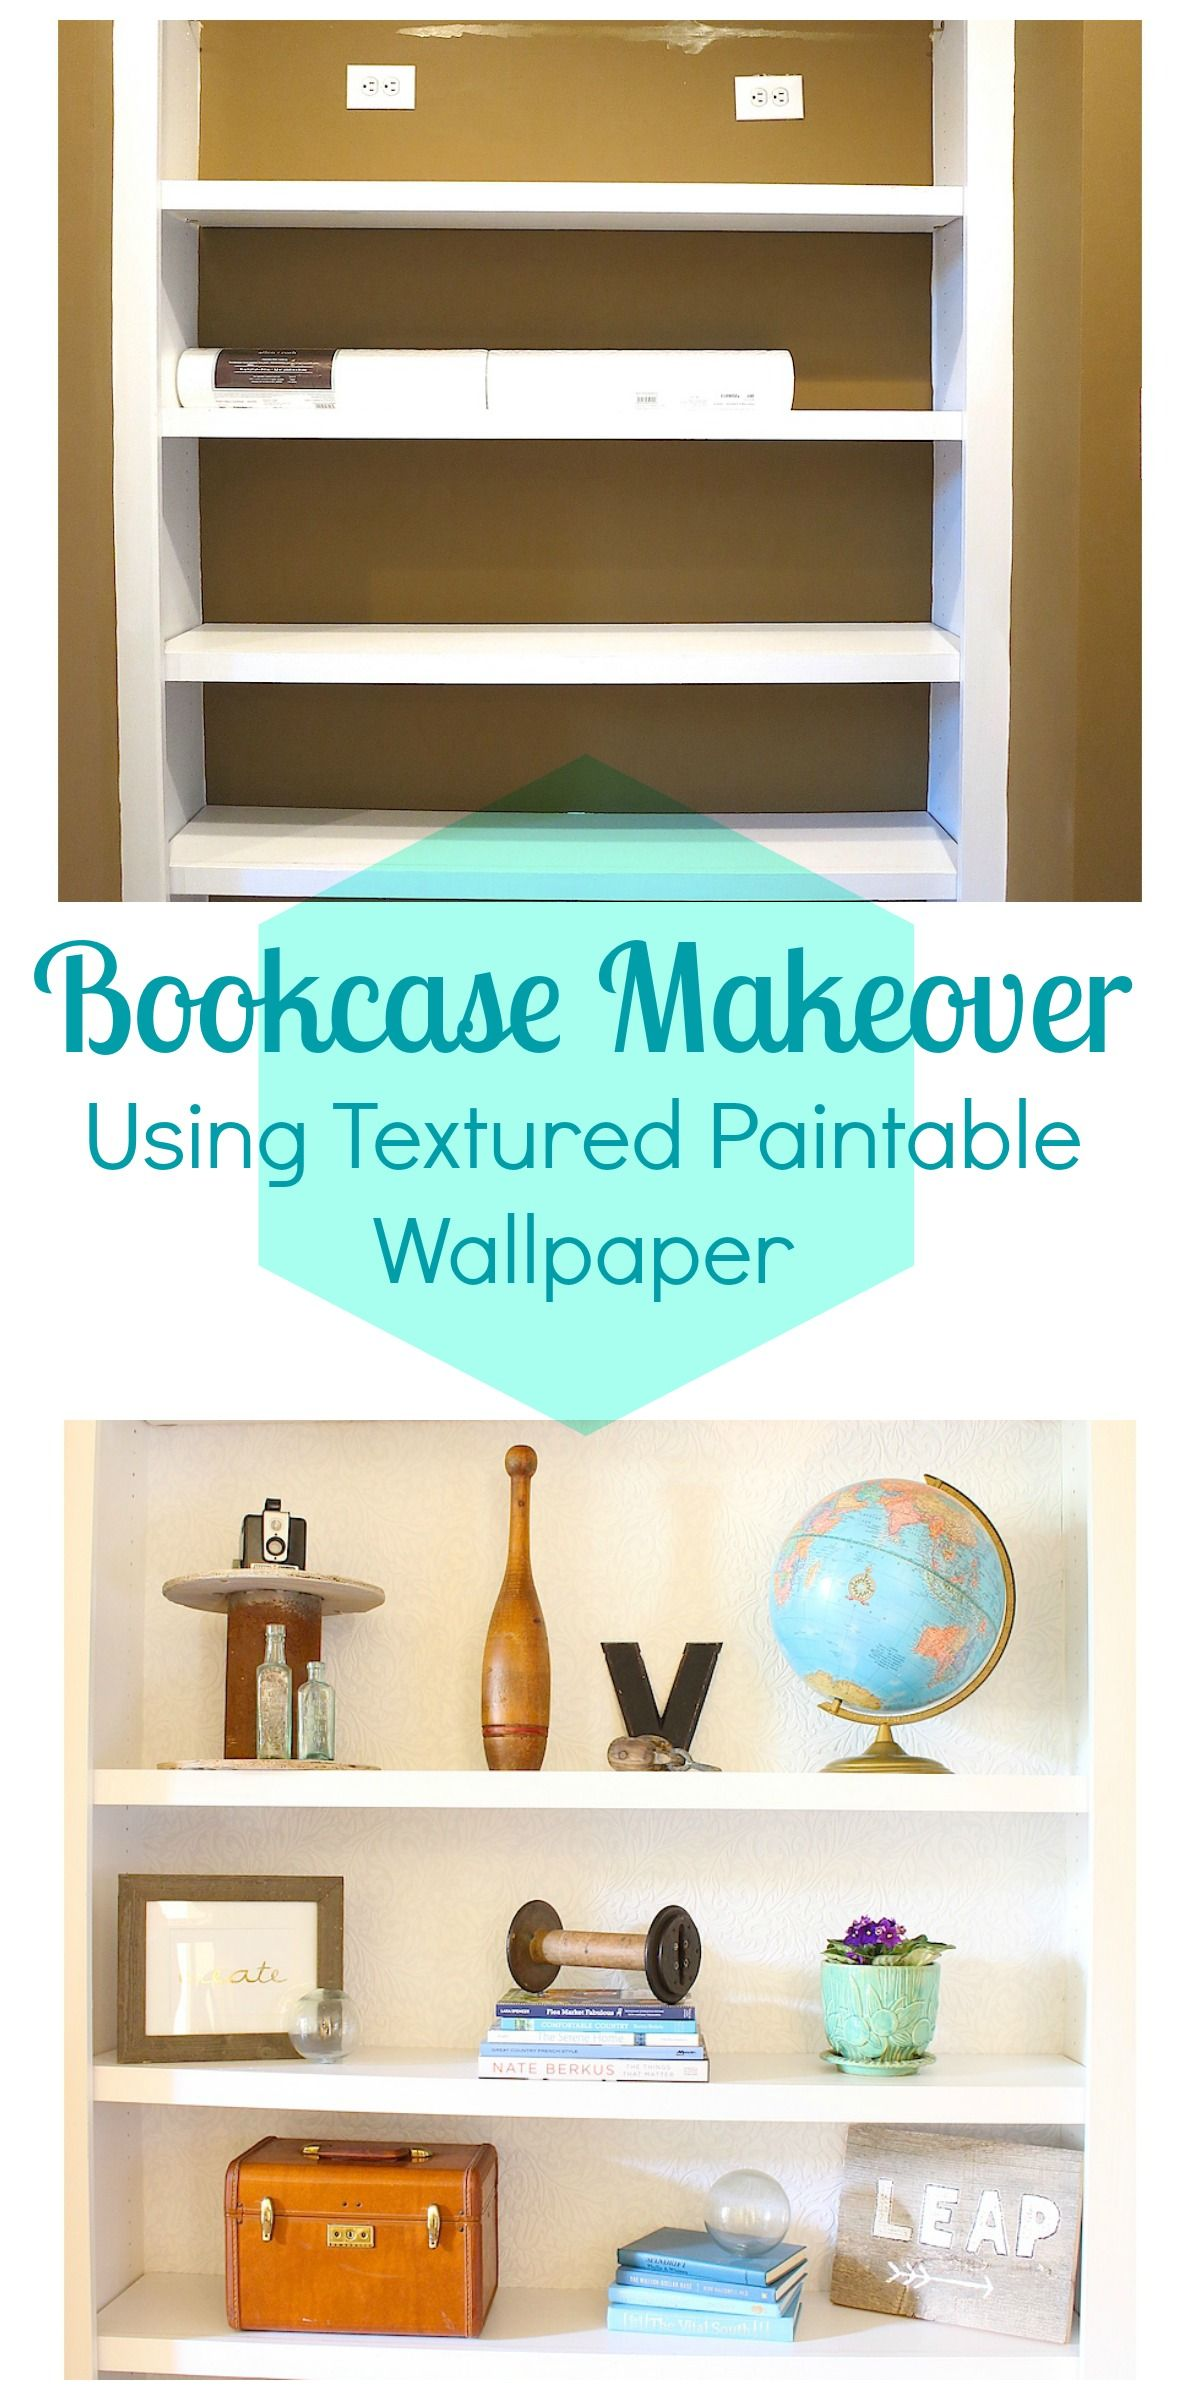 Bookcase Makeover Using Textured Paintable Wallpaper